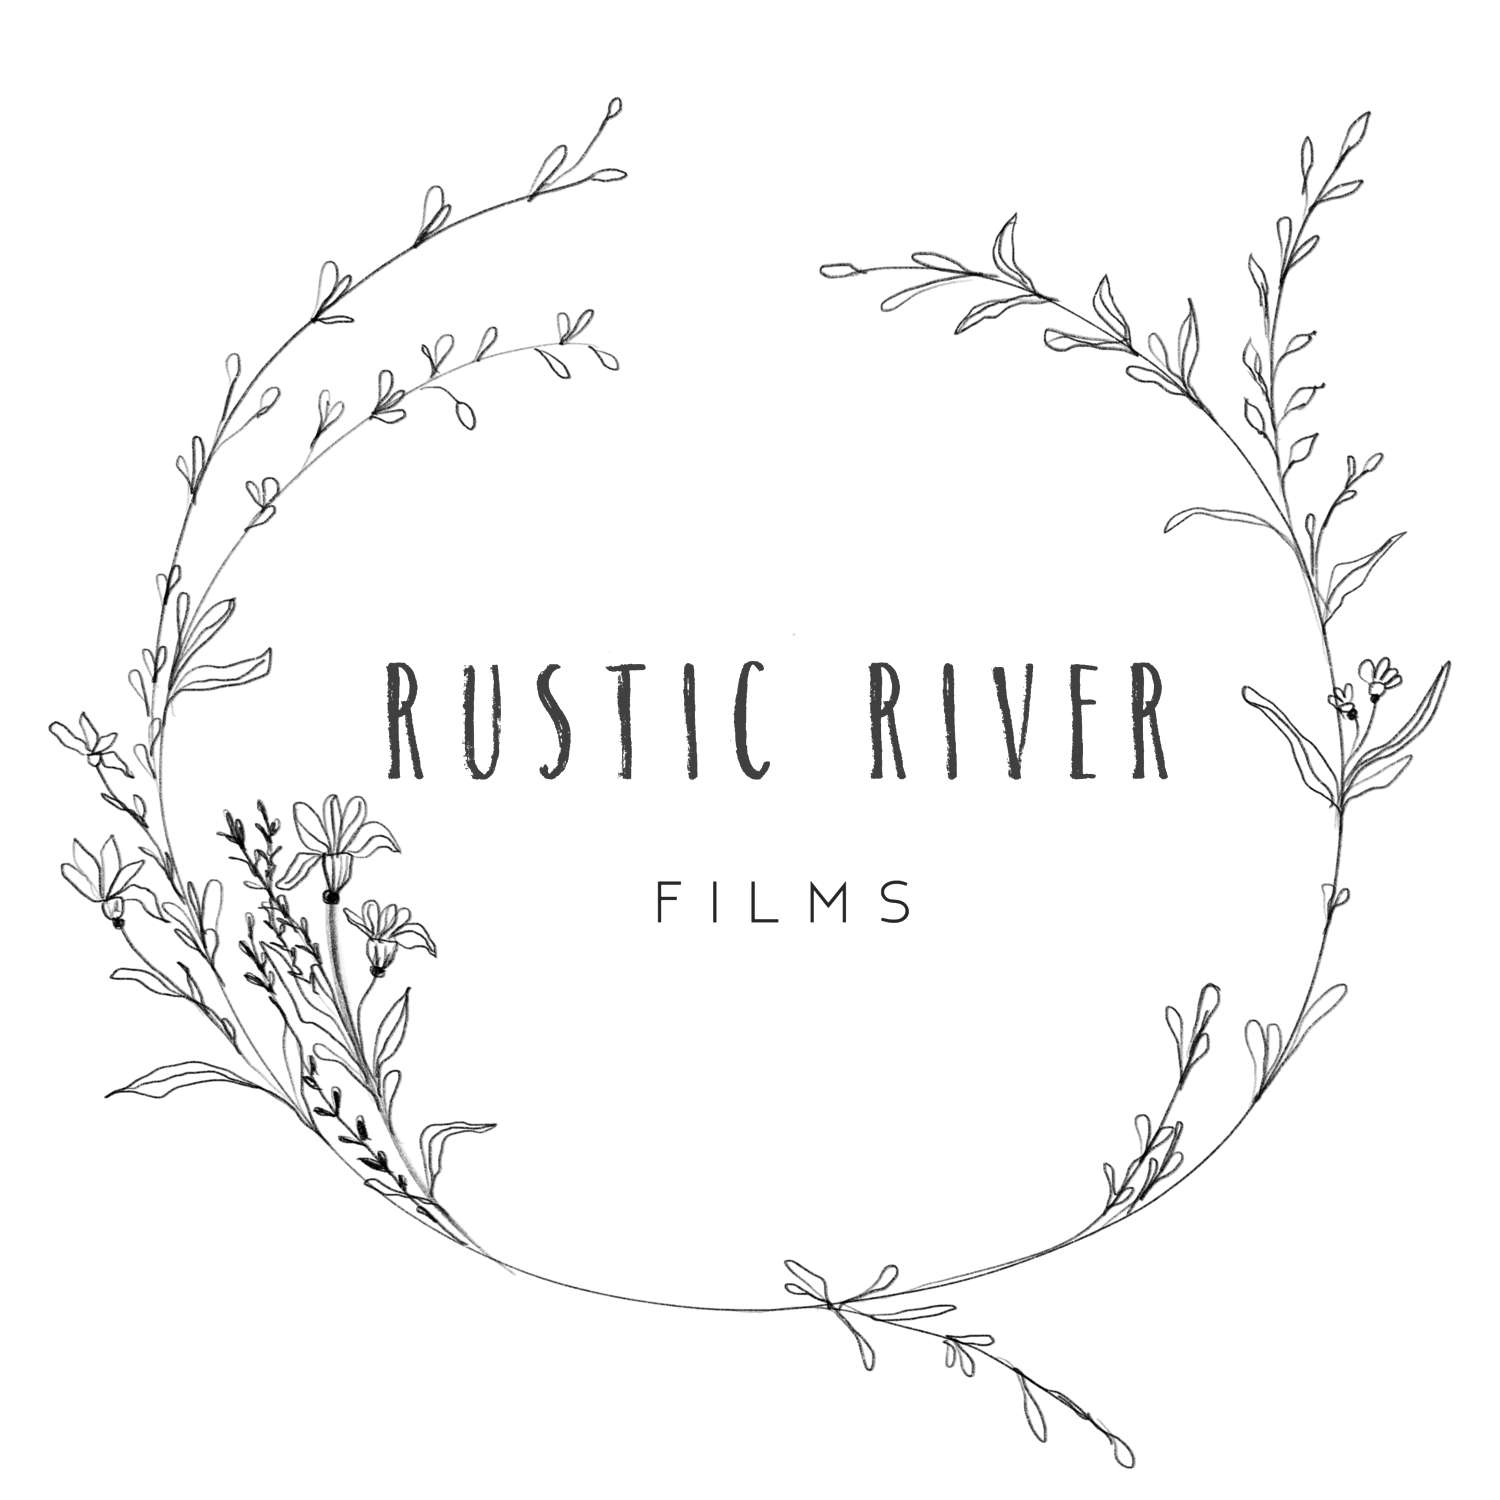 Rustic River Films